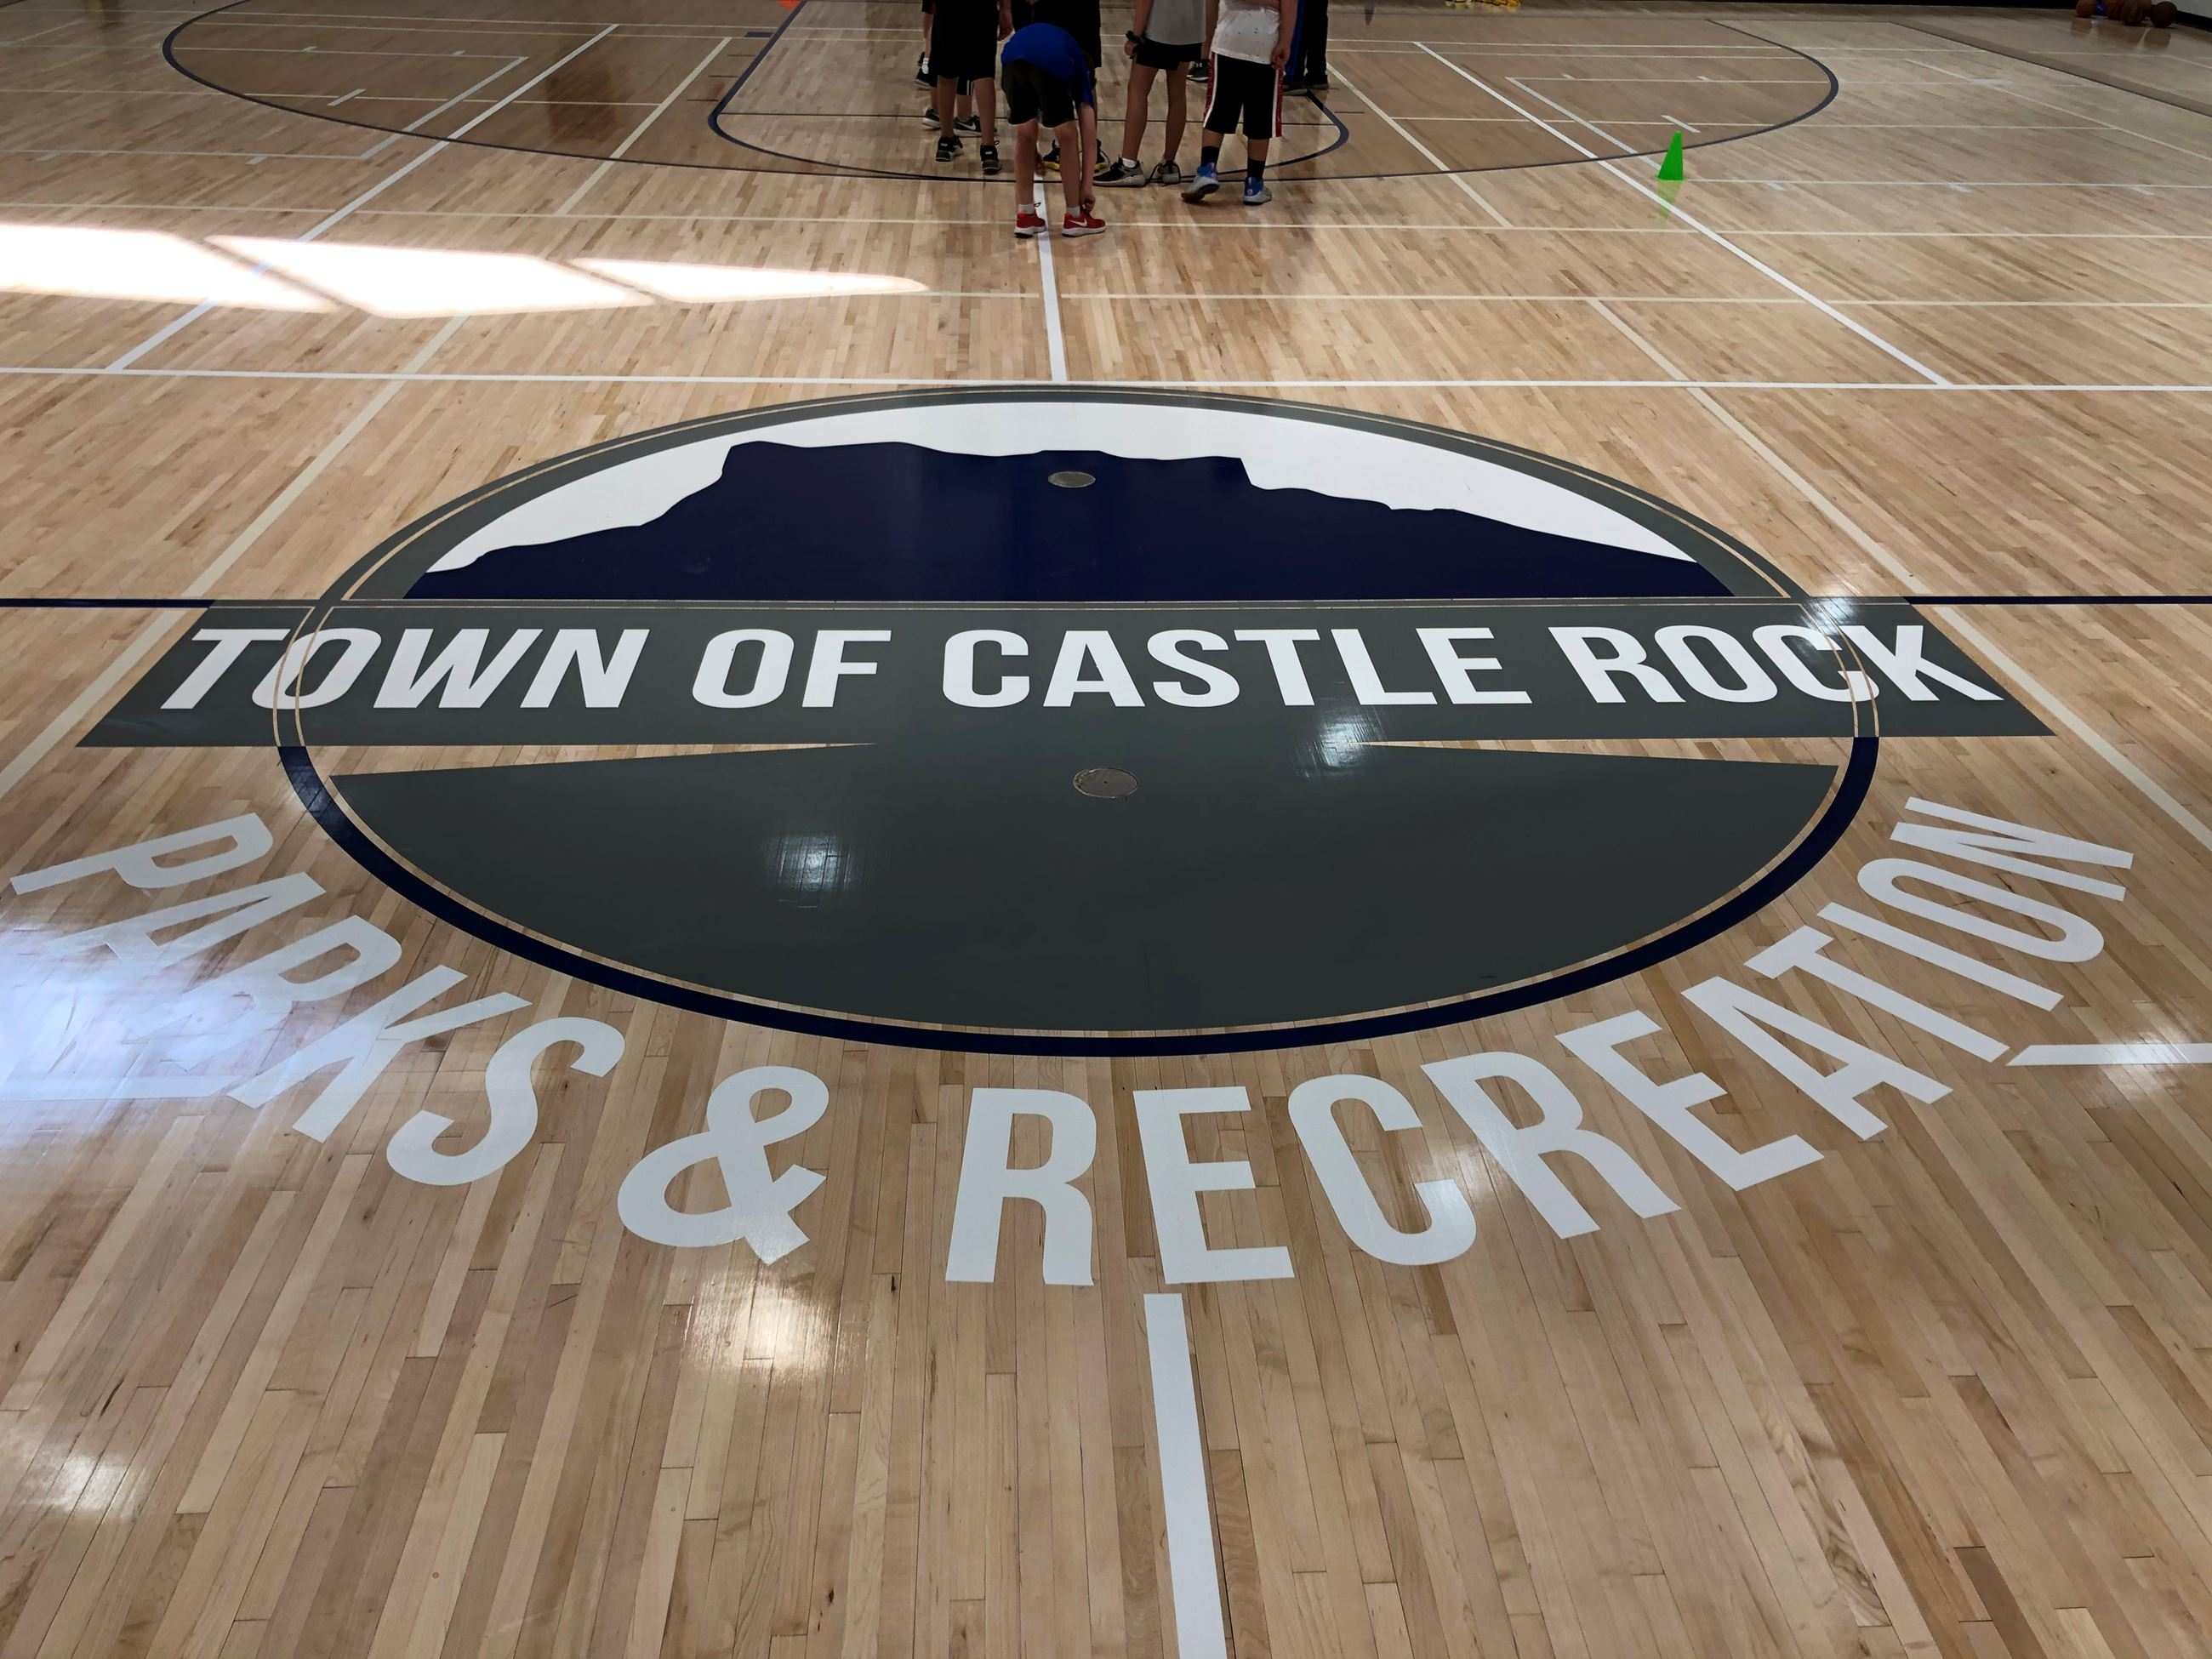 New gym floor featuring the parks and recreation logo